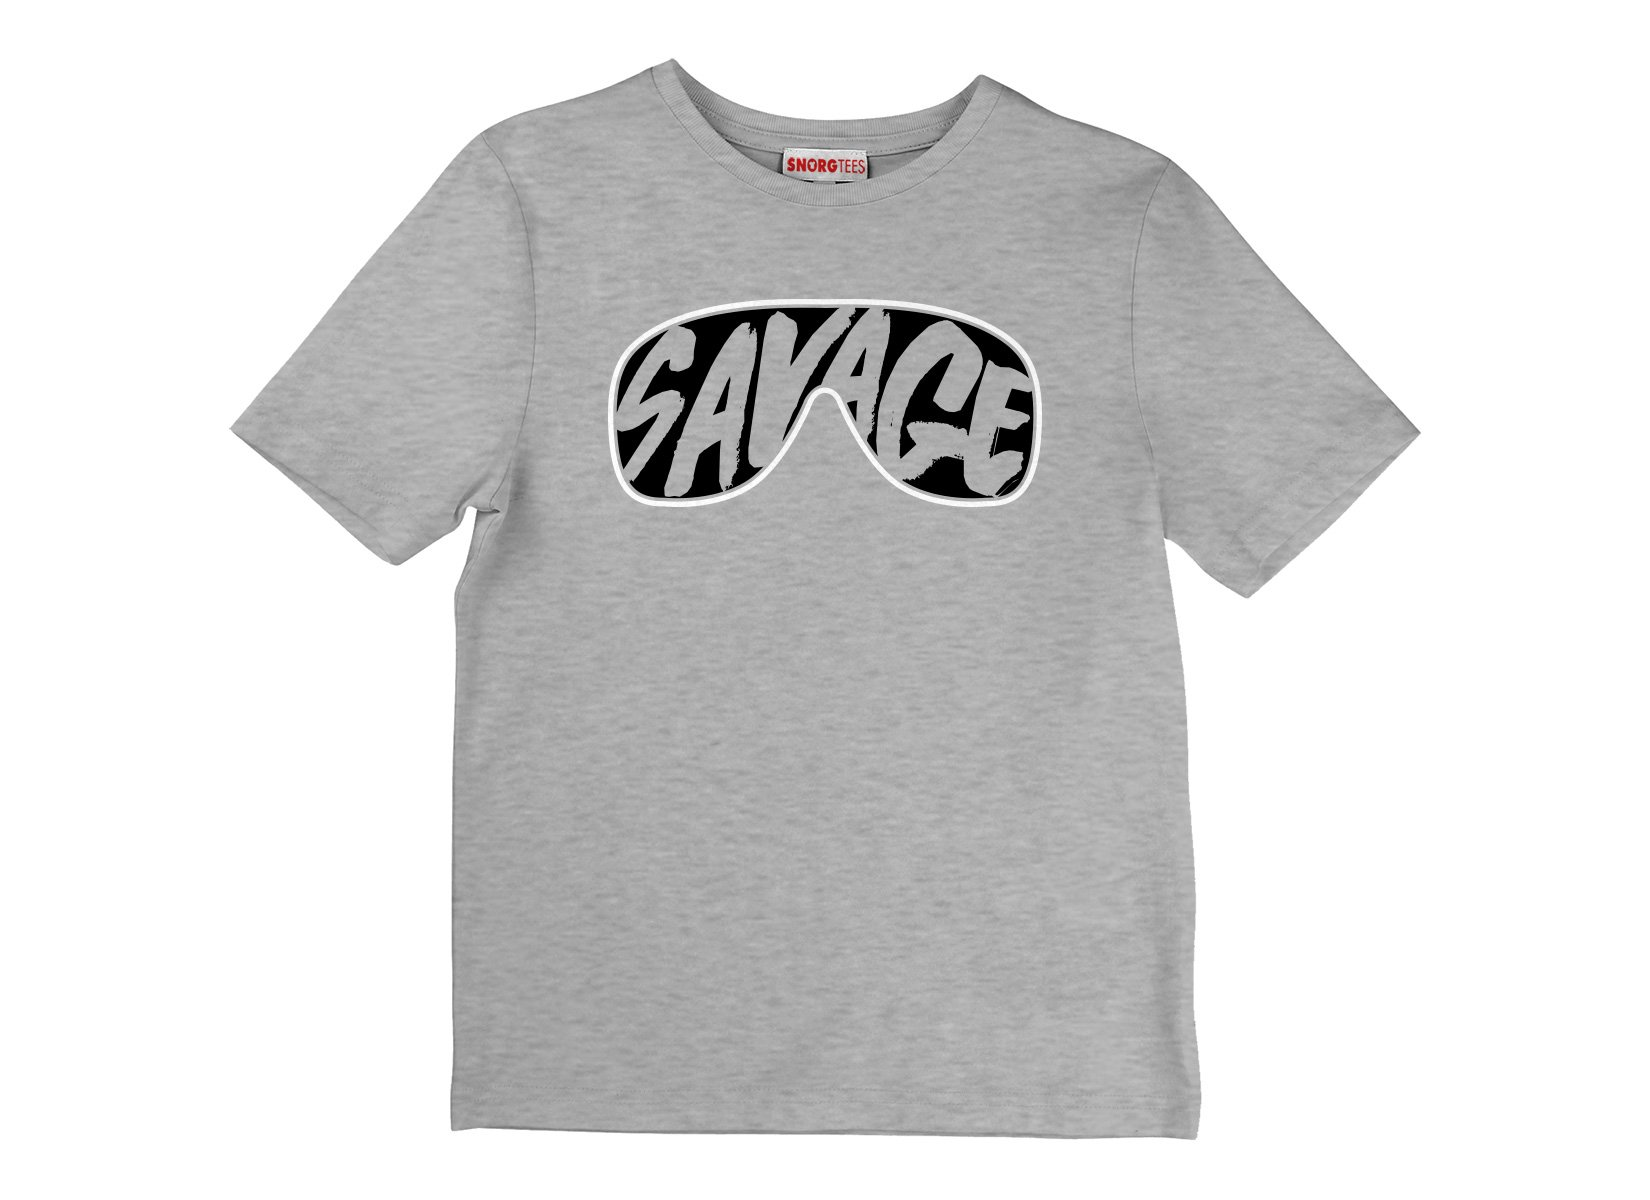 Savage Glasses on Kids T-Shirt